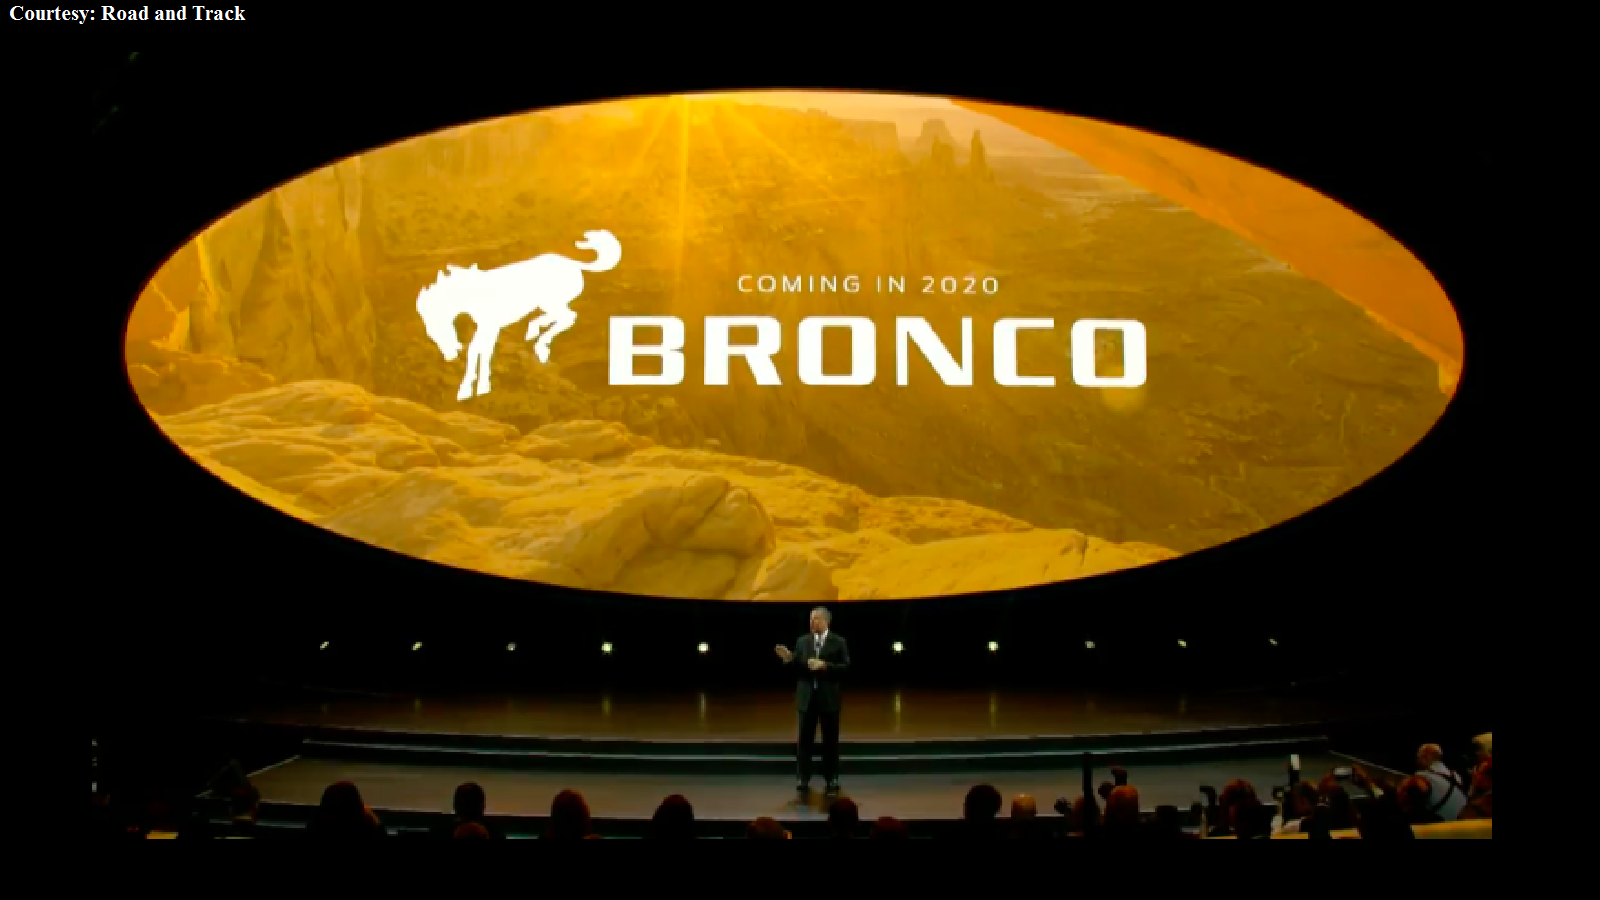 A new Ford Bronco is announced for 2020